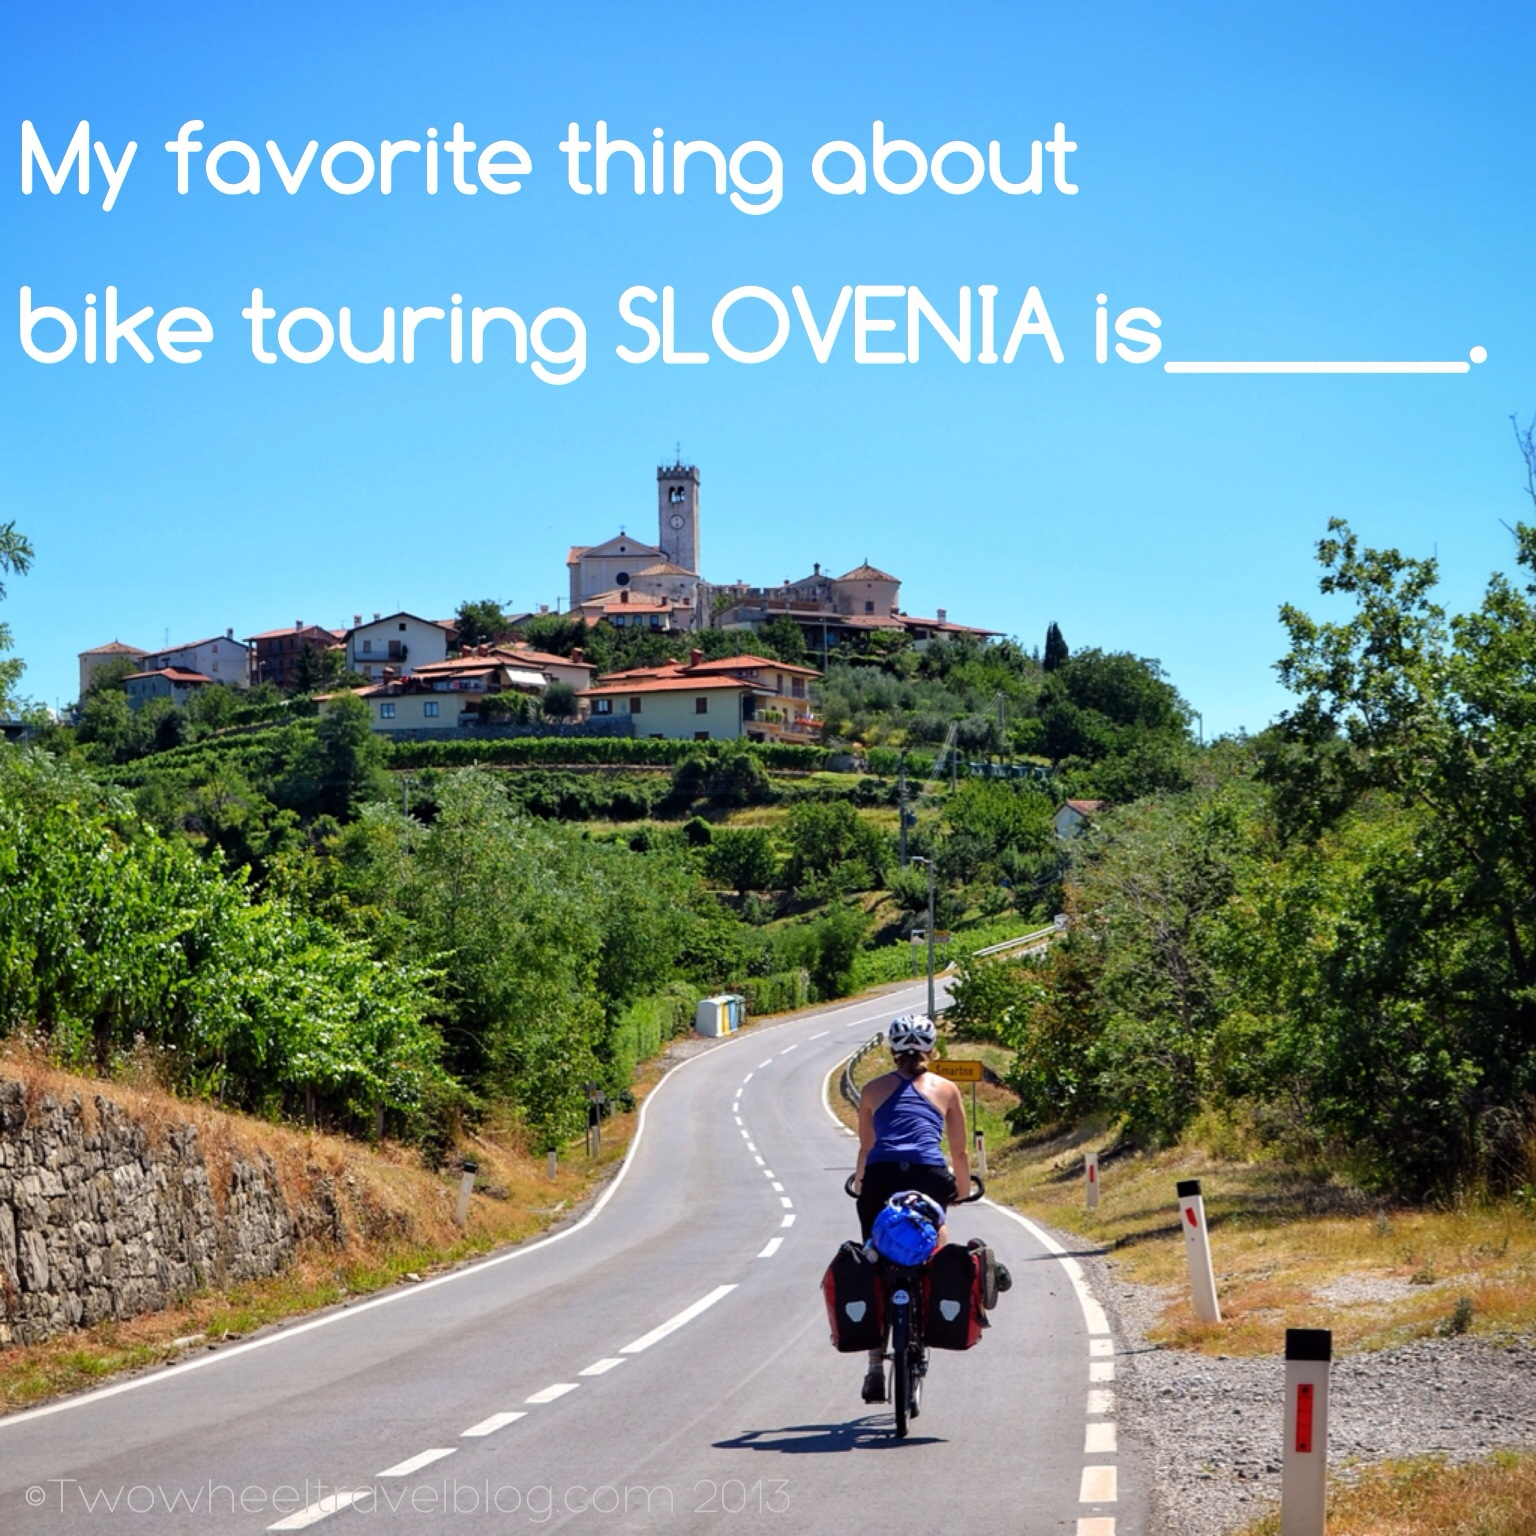 Tell us your favorite experiences bike touring Slovenia